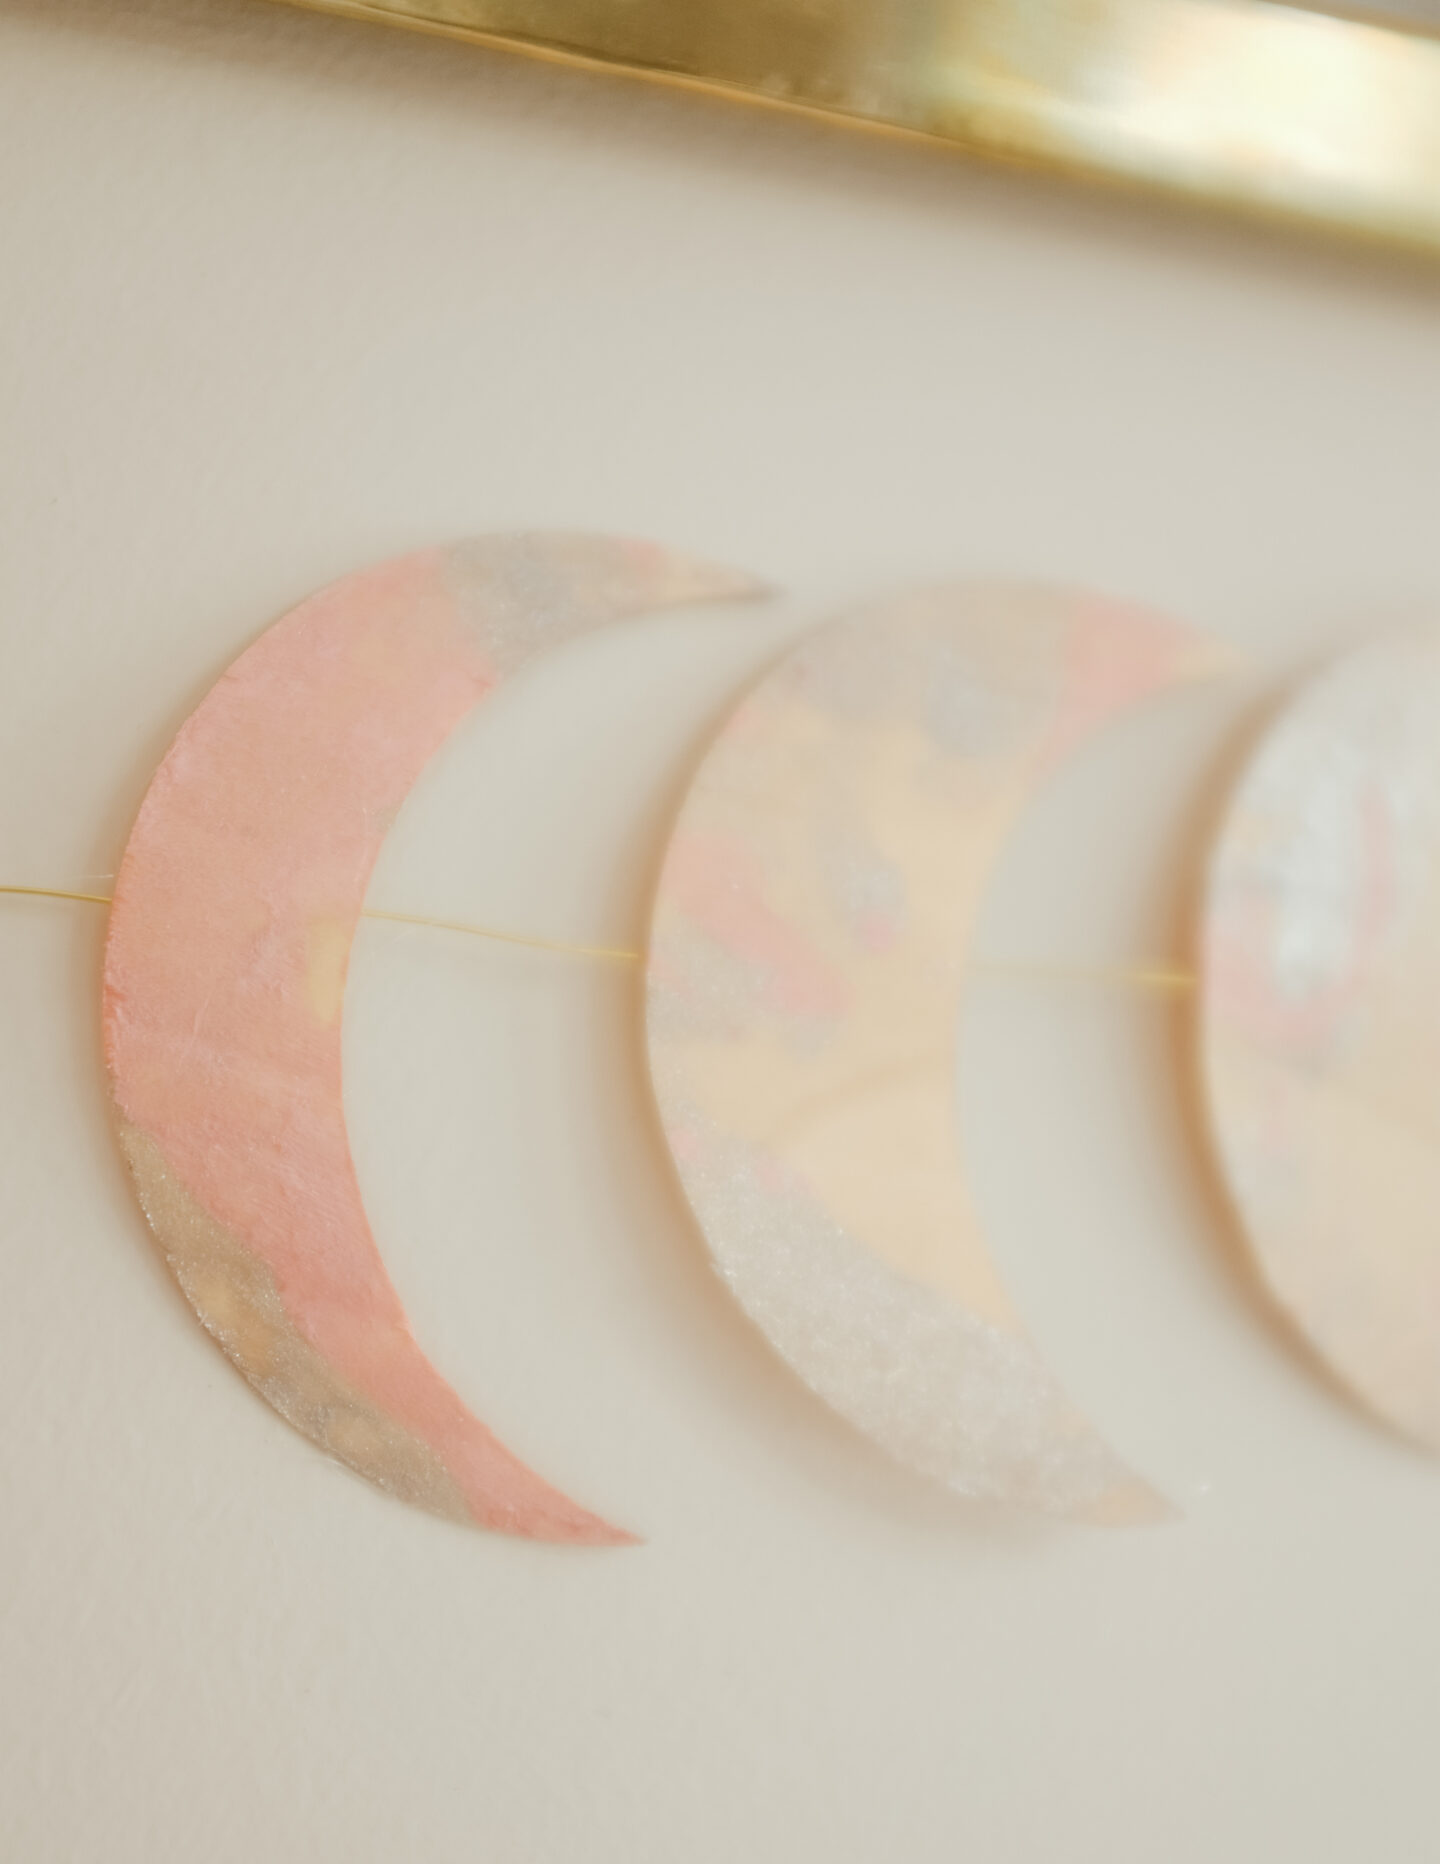 Phases of the moon cricut DIY project